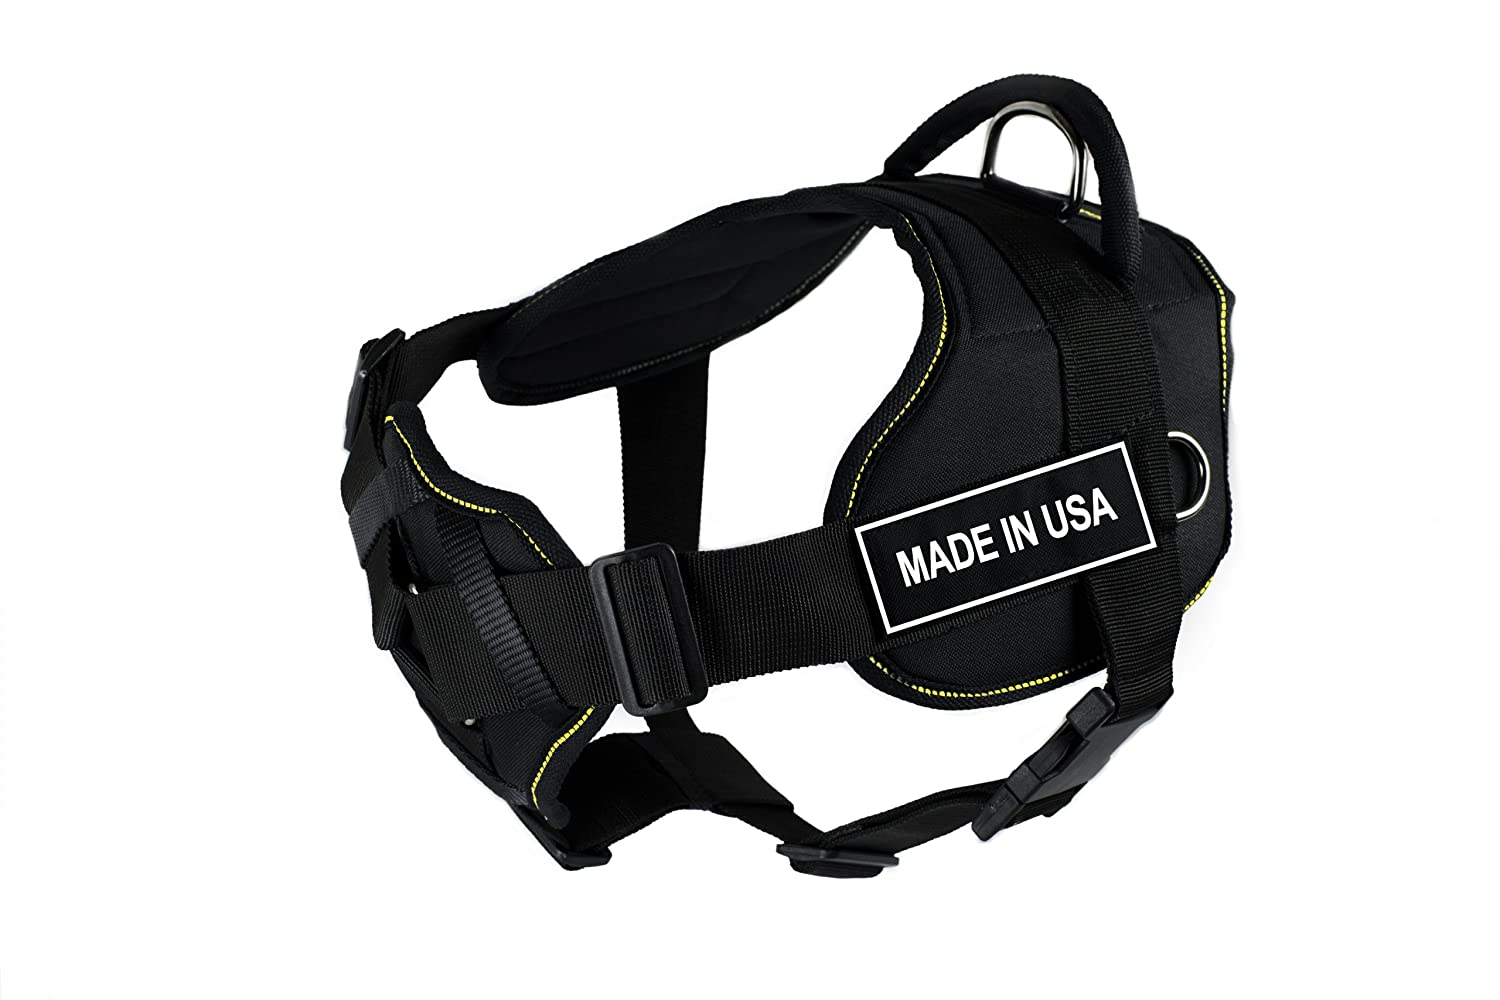 Dean & Tyler New DT FUN Dog Harness With Padded Chest Piece With 3 Straps, Yellow Trim Size  Medium (Will Fit  71cm 86cm) with  MADE IN USA  Velcro Patches, Black White